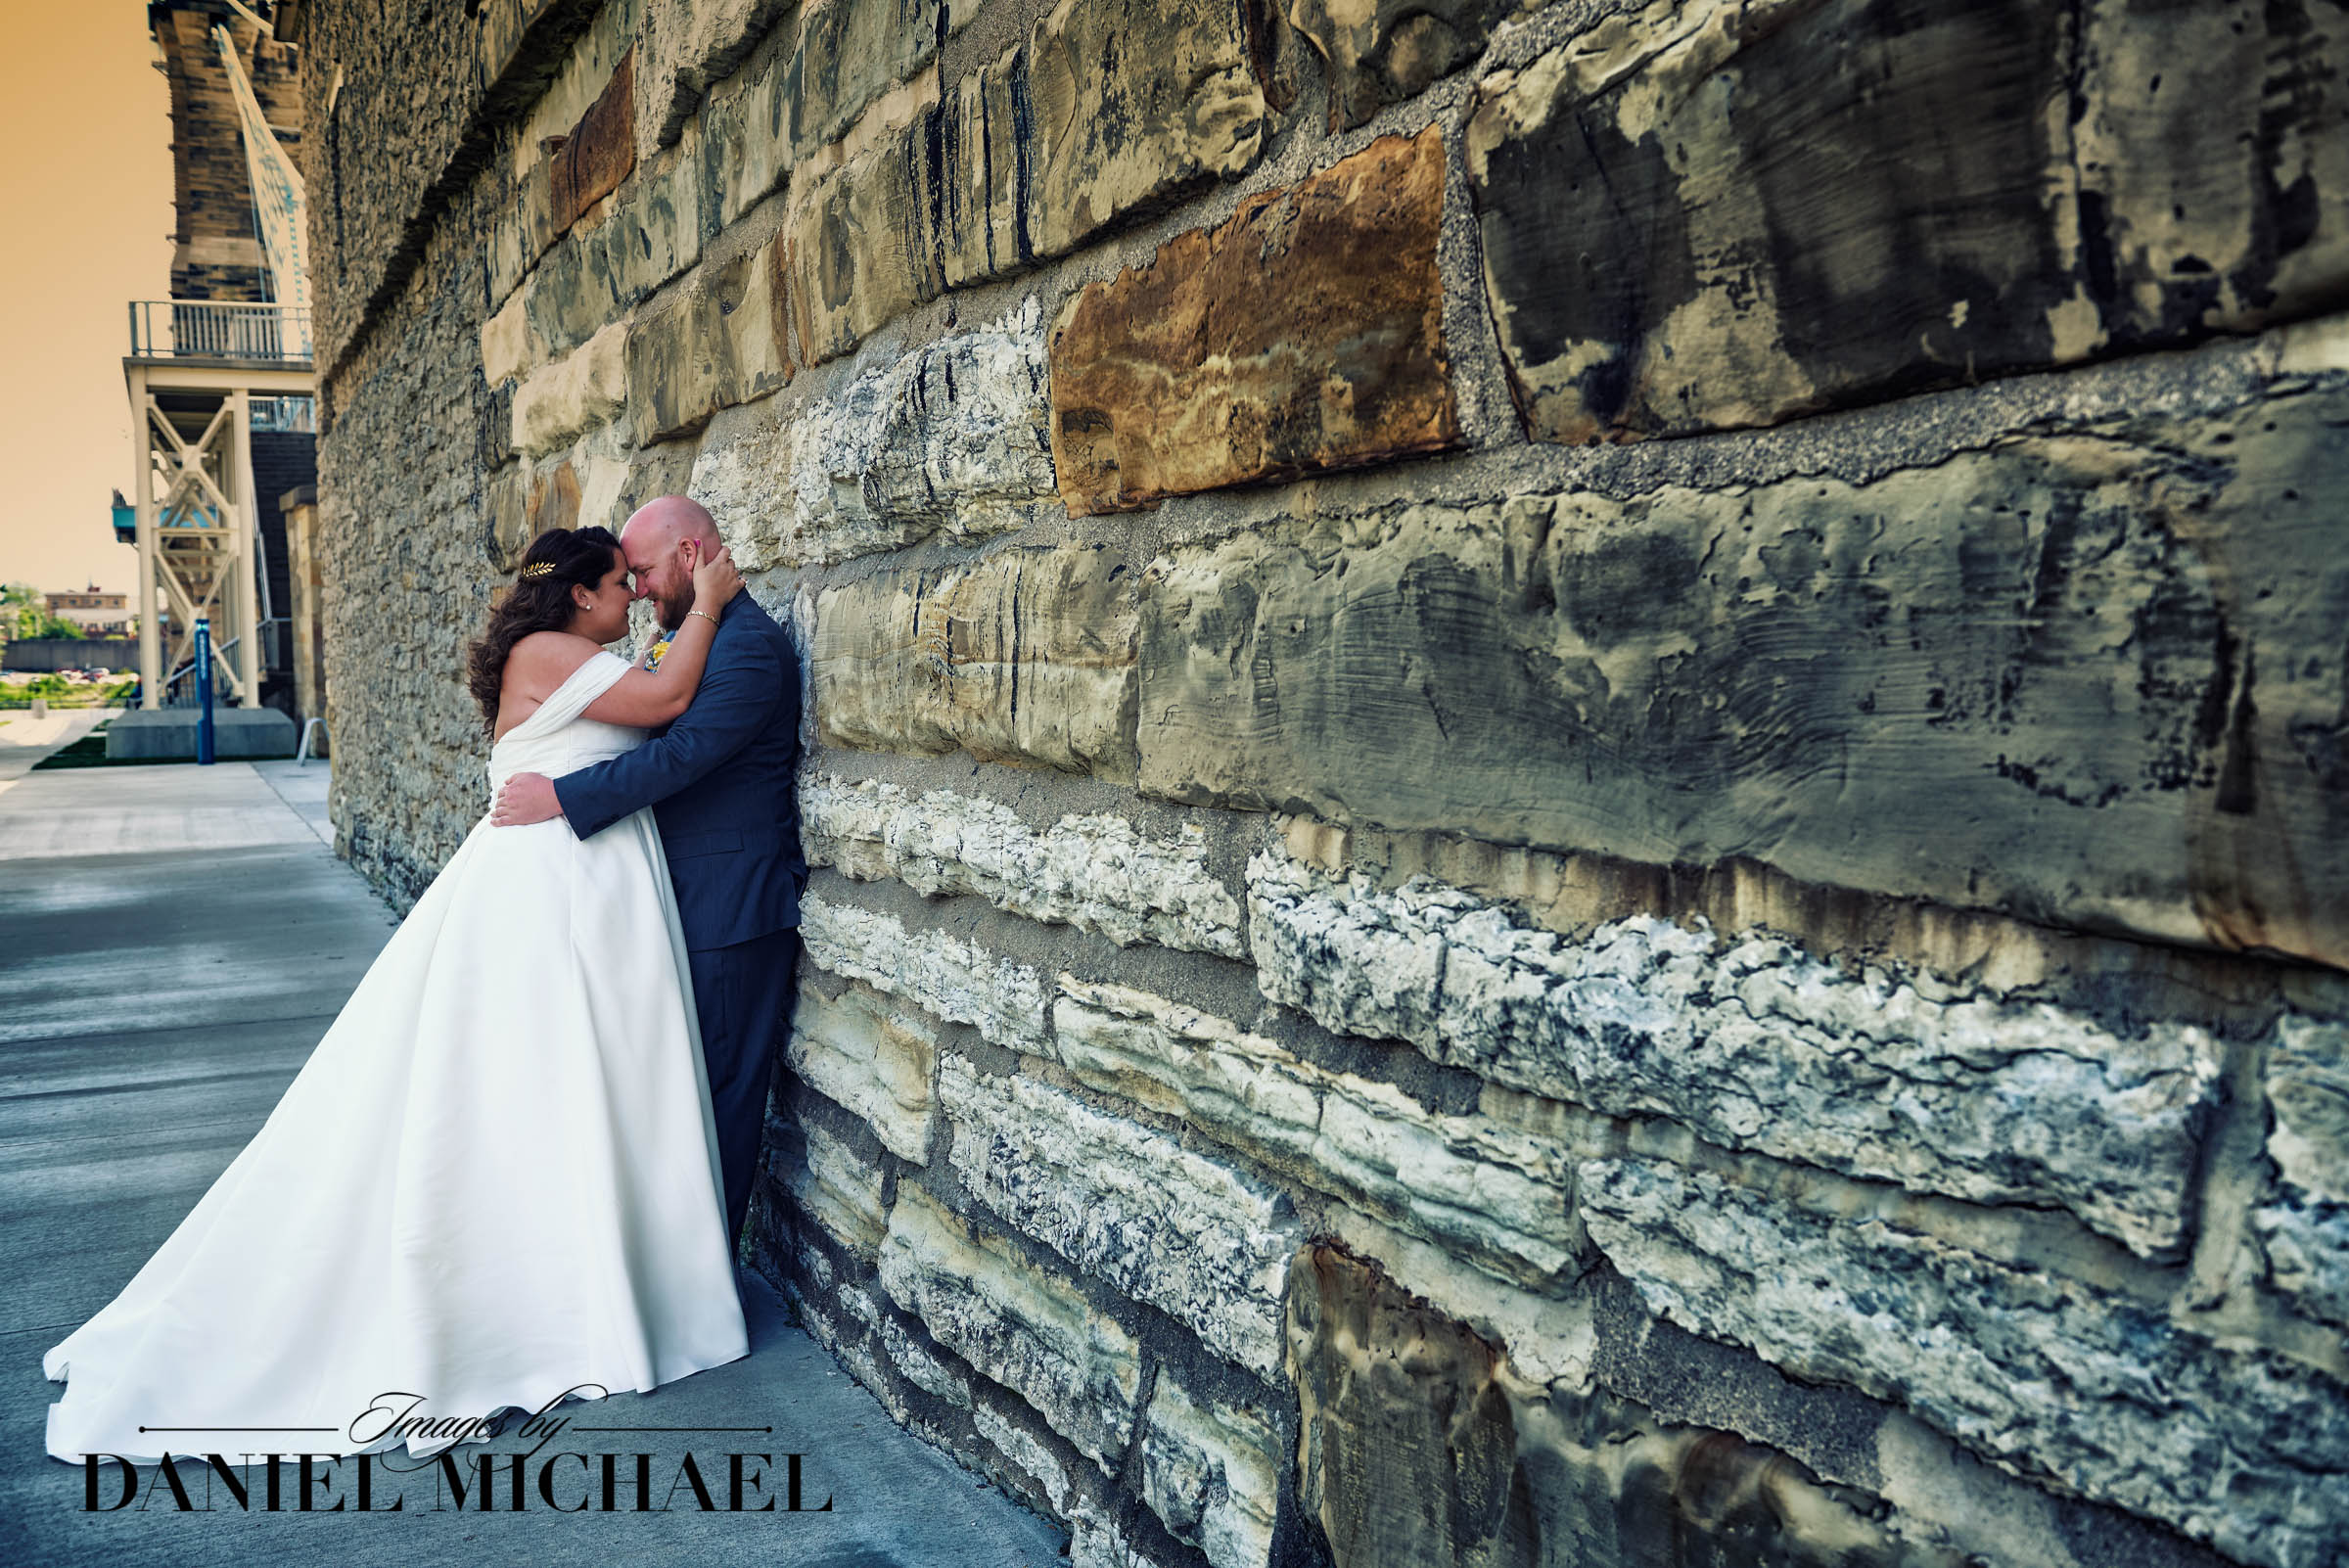 Wedding Photography Smale Park